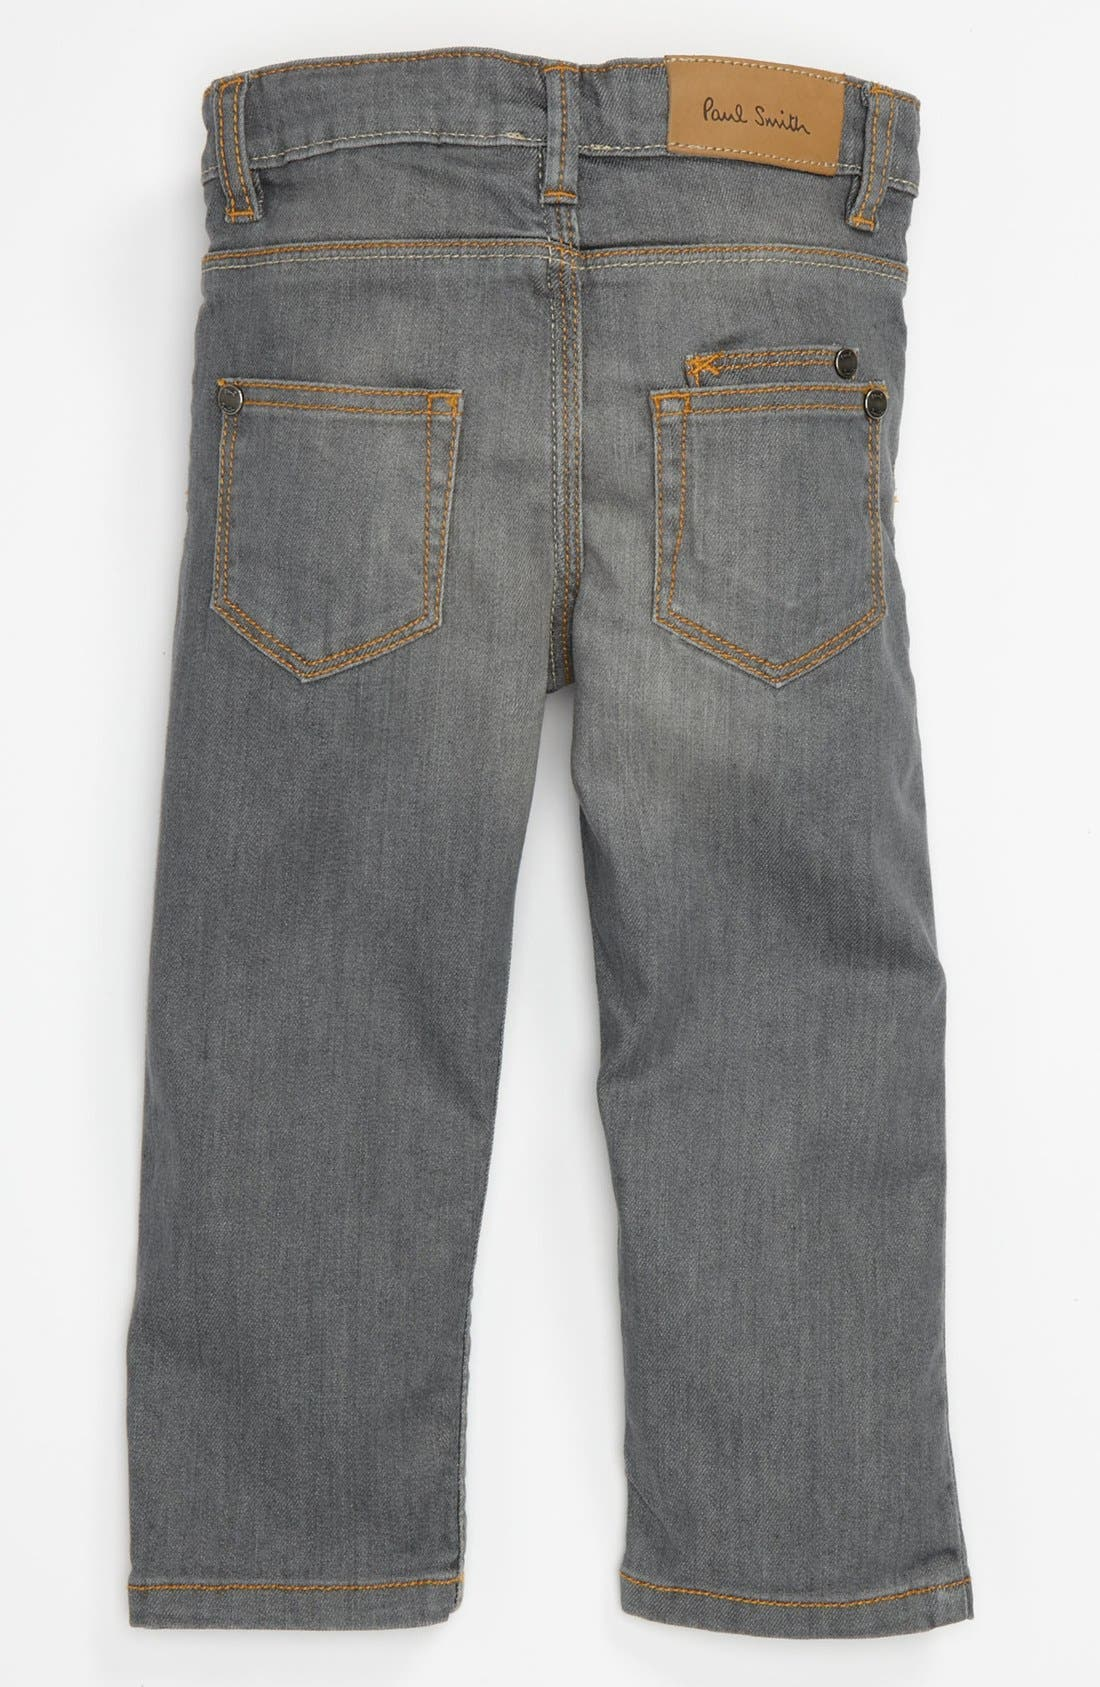 Alternate Image 1 Selected - Paul Smith Junior Straight Leg Jeans (Baby)